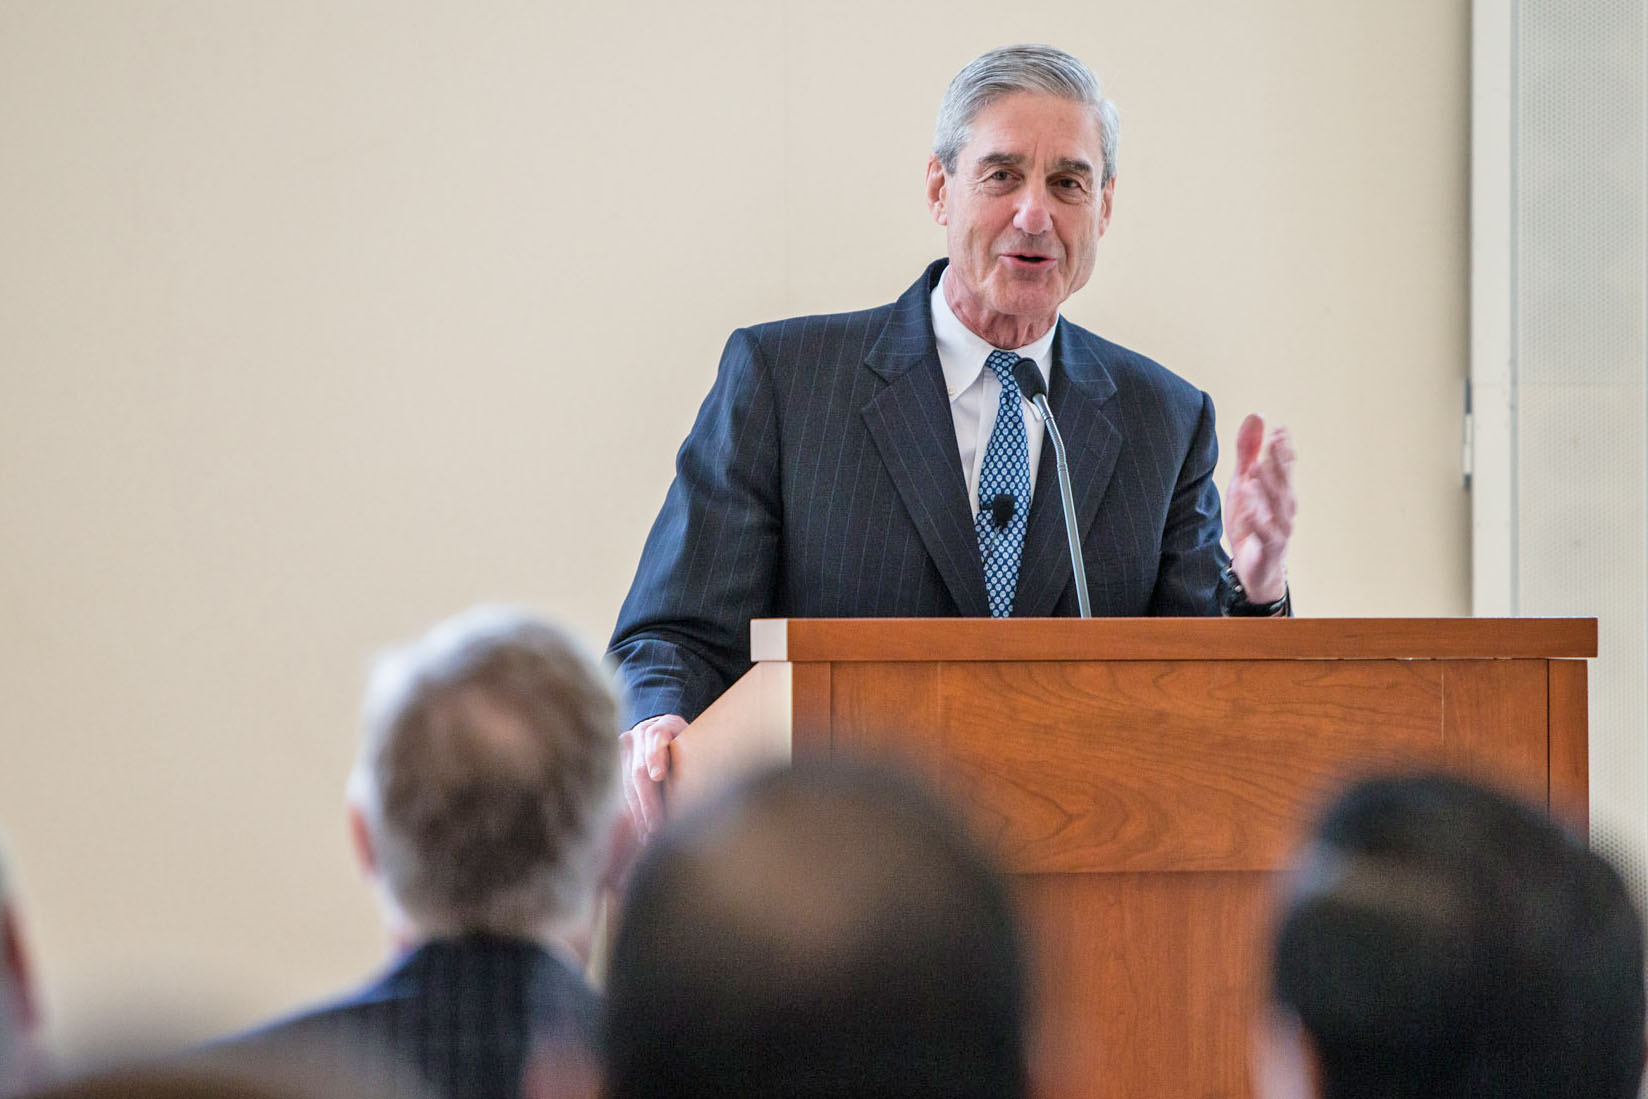 Robert Mueller speaking at the University of Virginia School of Law (Photo by Cole Geddy, University Communications)